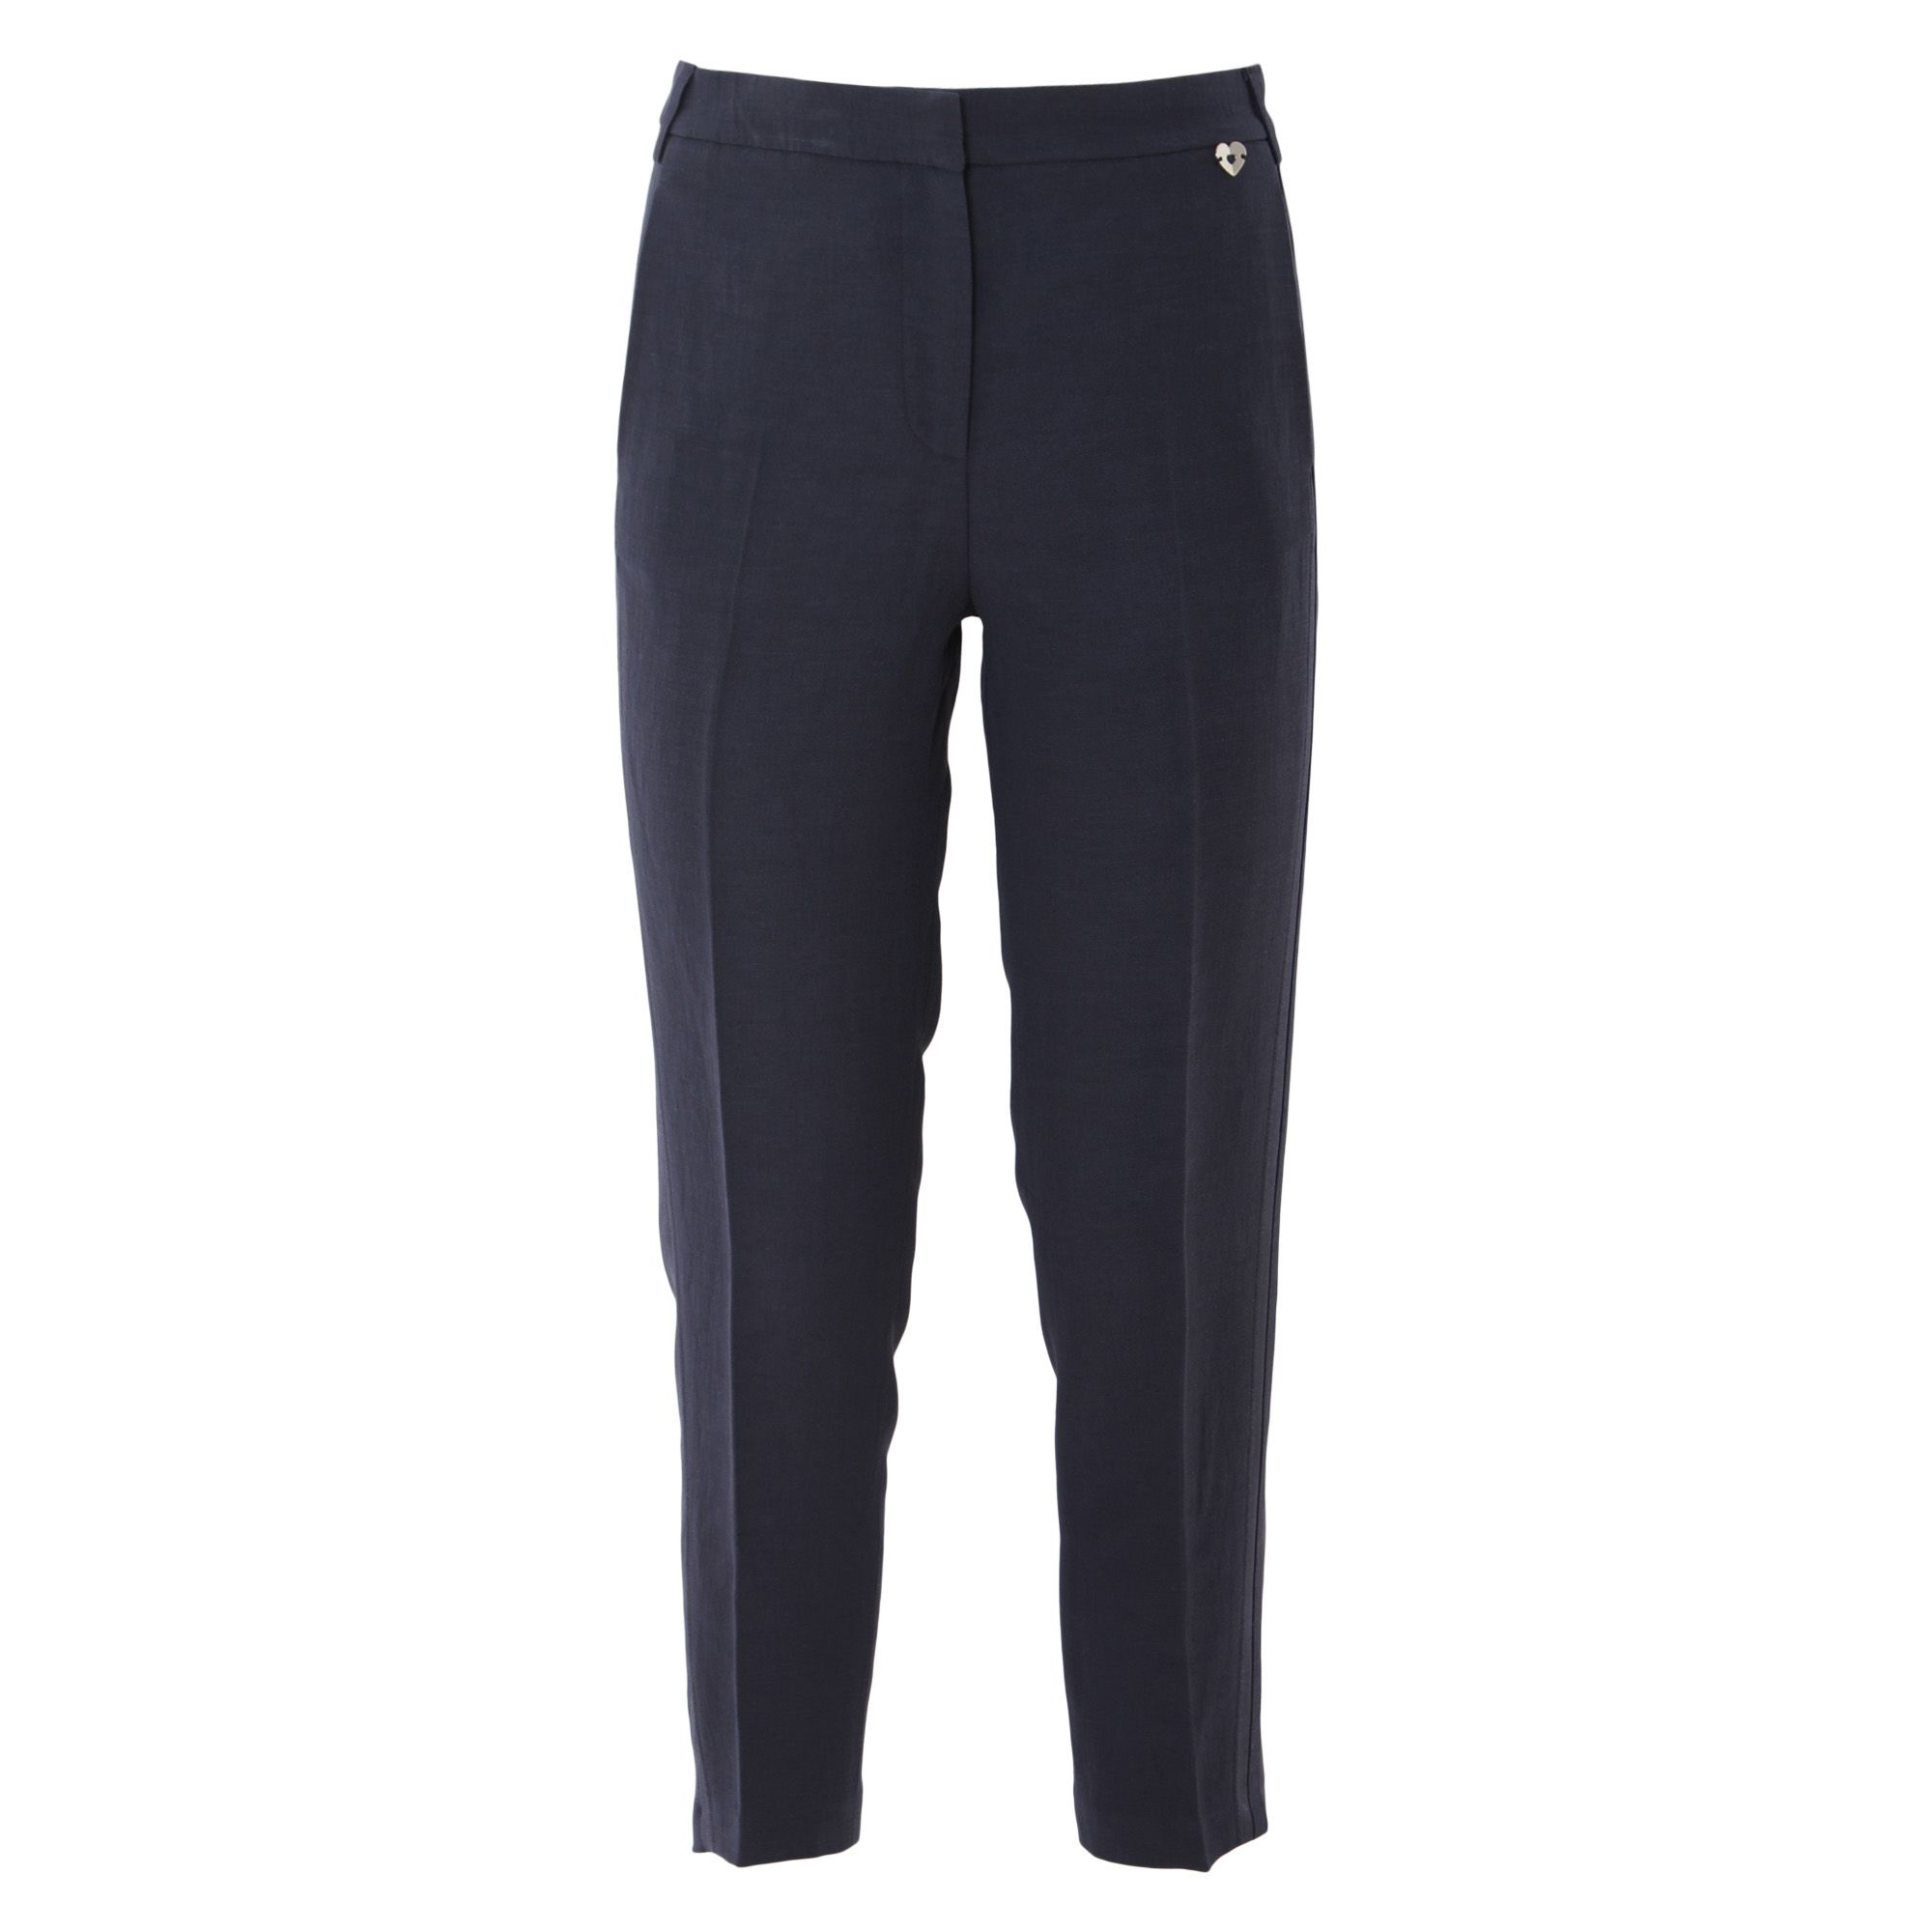 TwinSet Viscose Blend Trousers